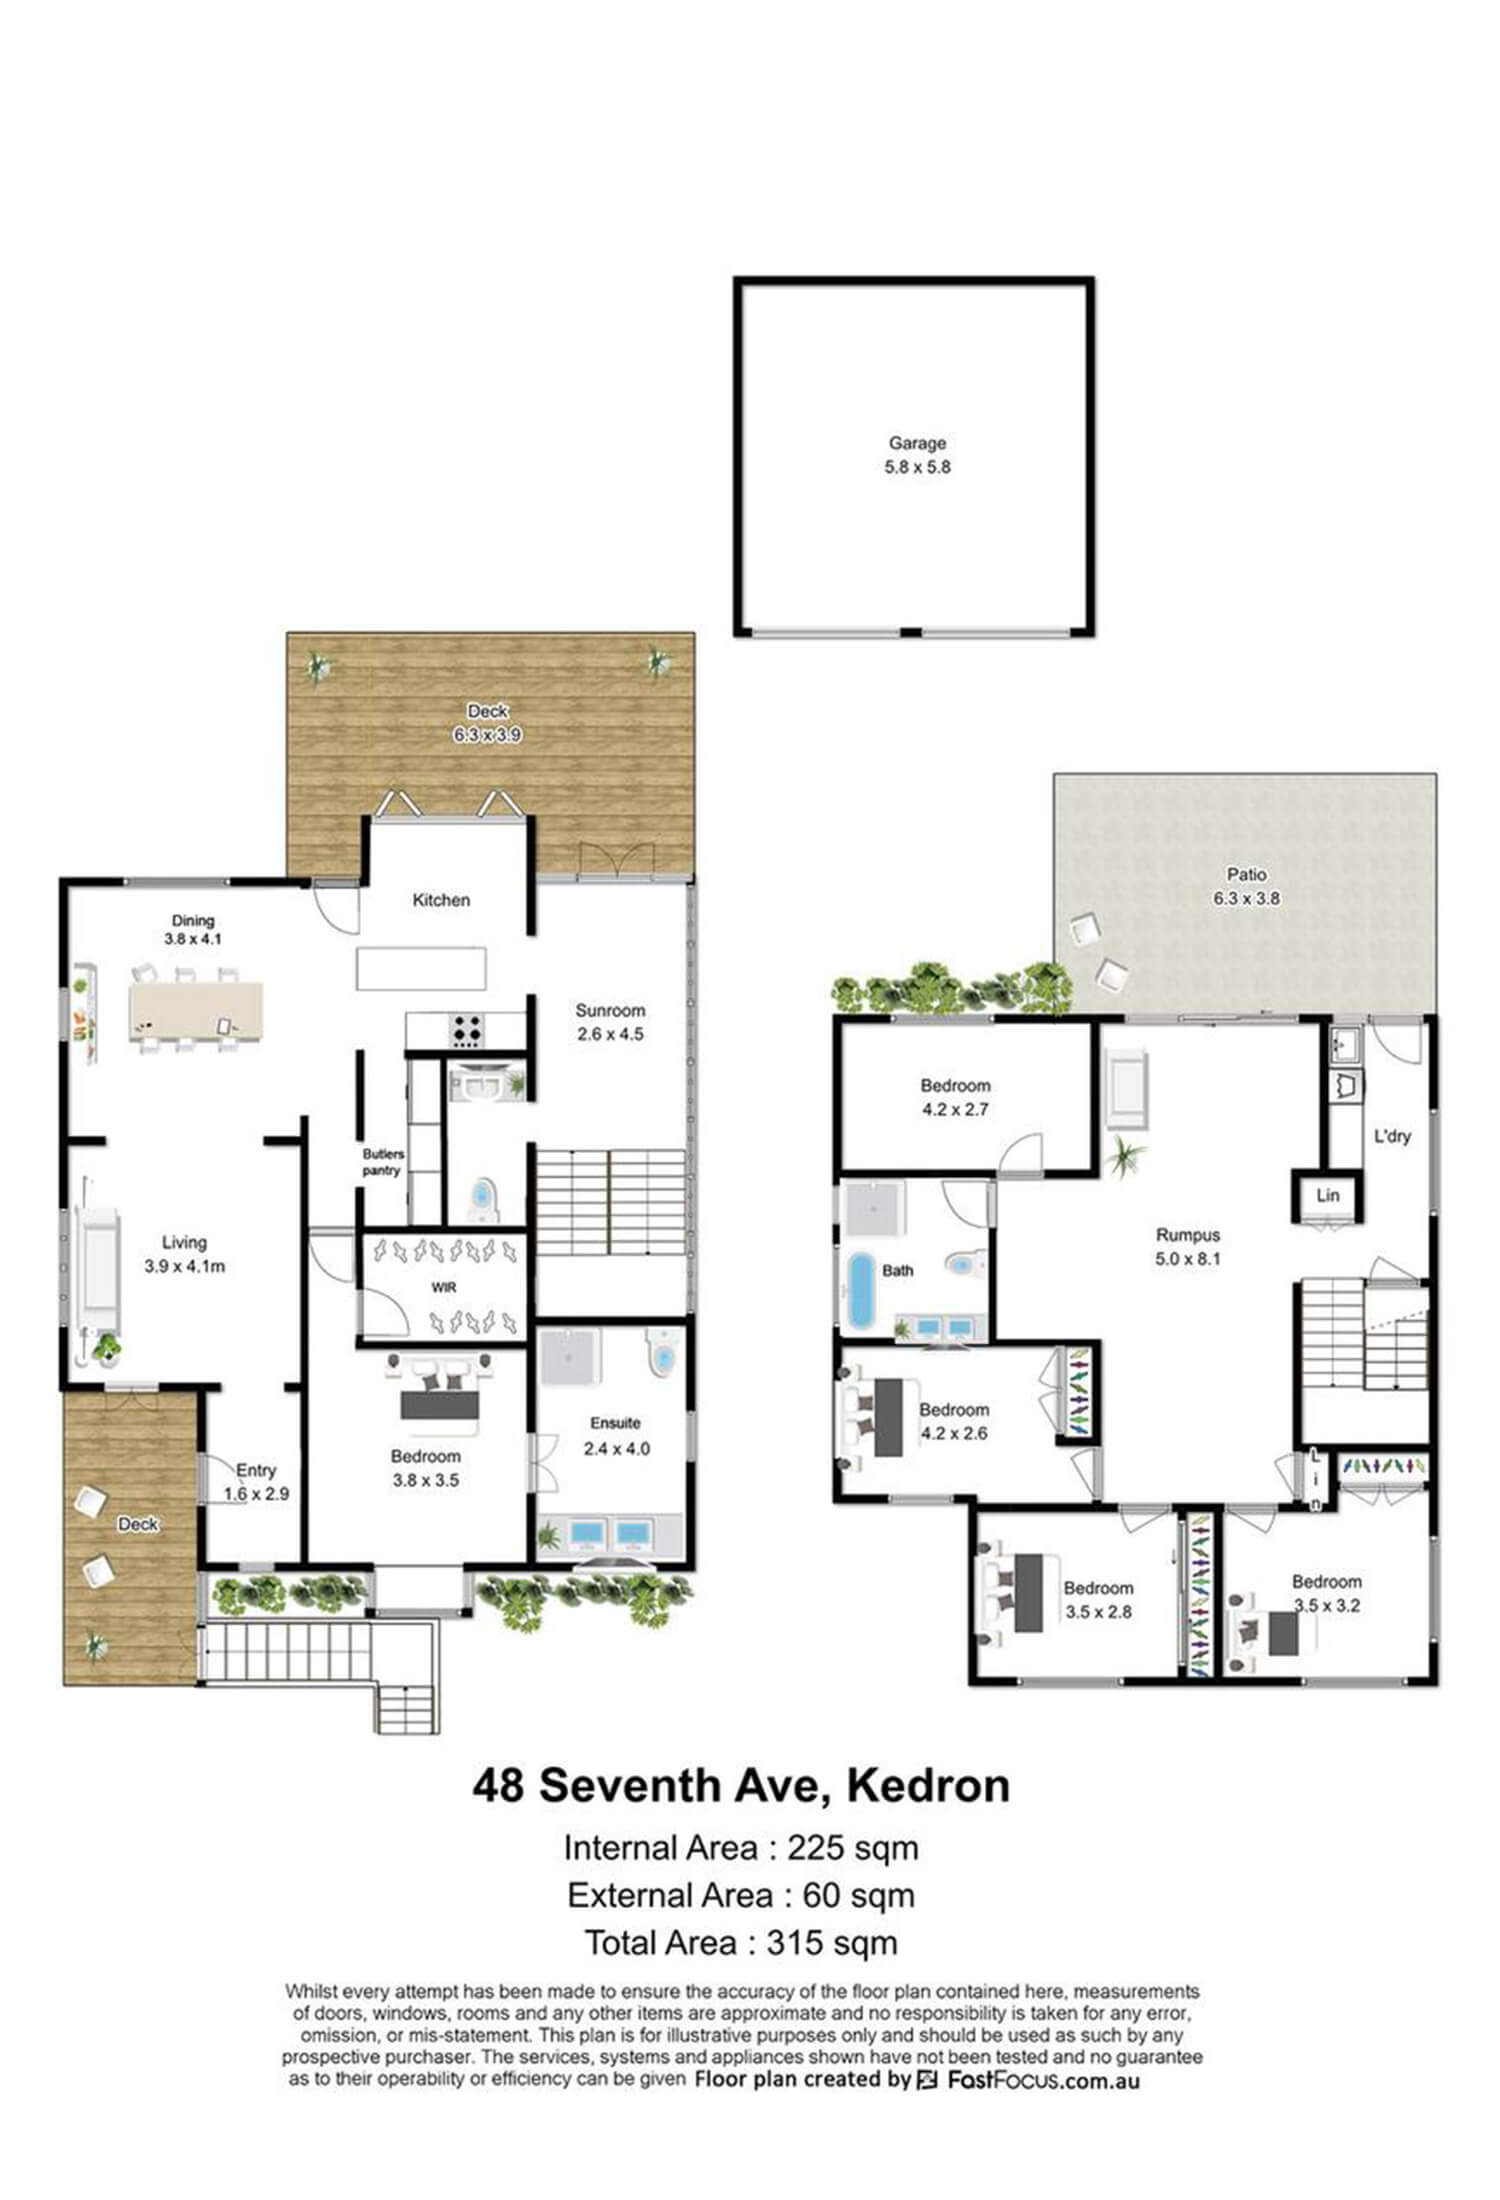 est living 48 seventh ave kedron open house